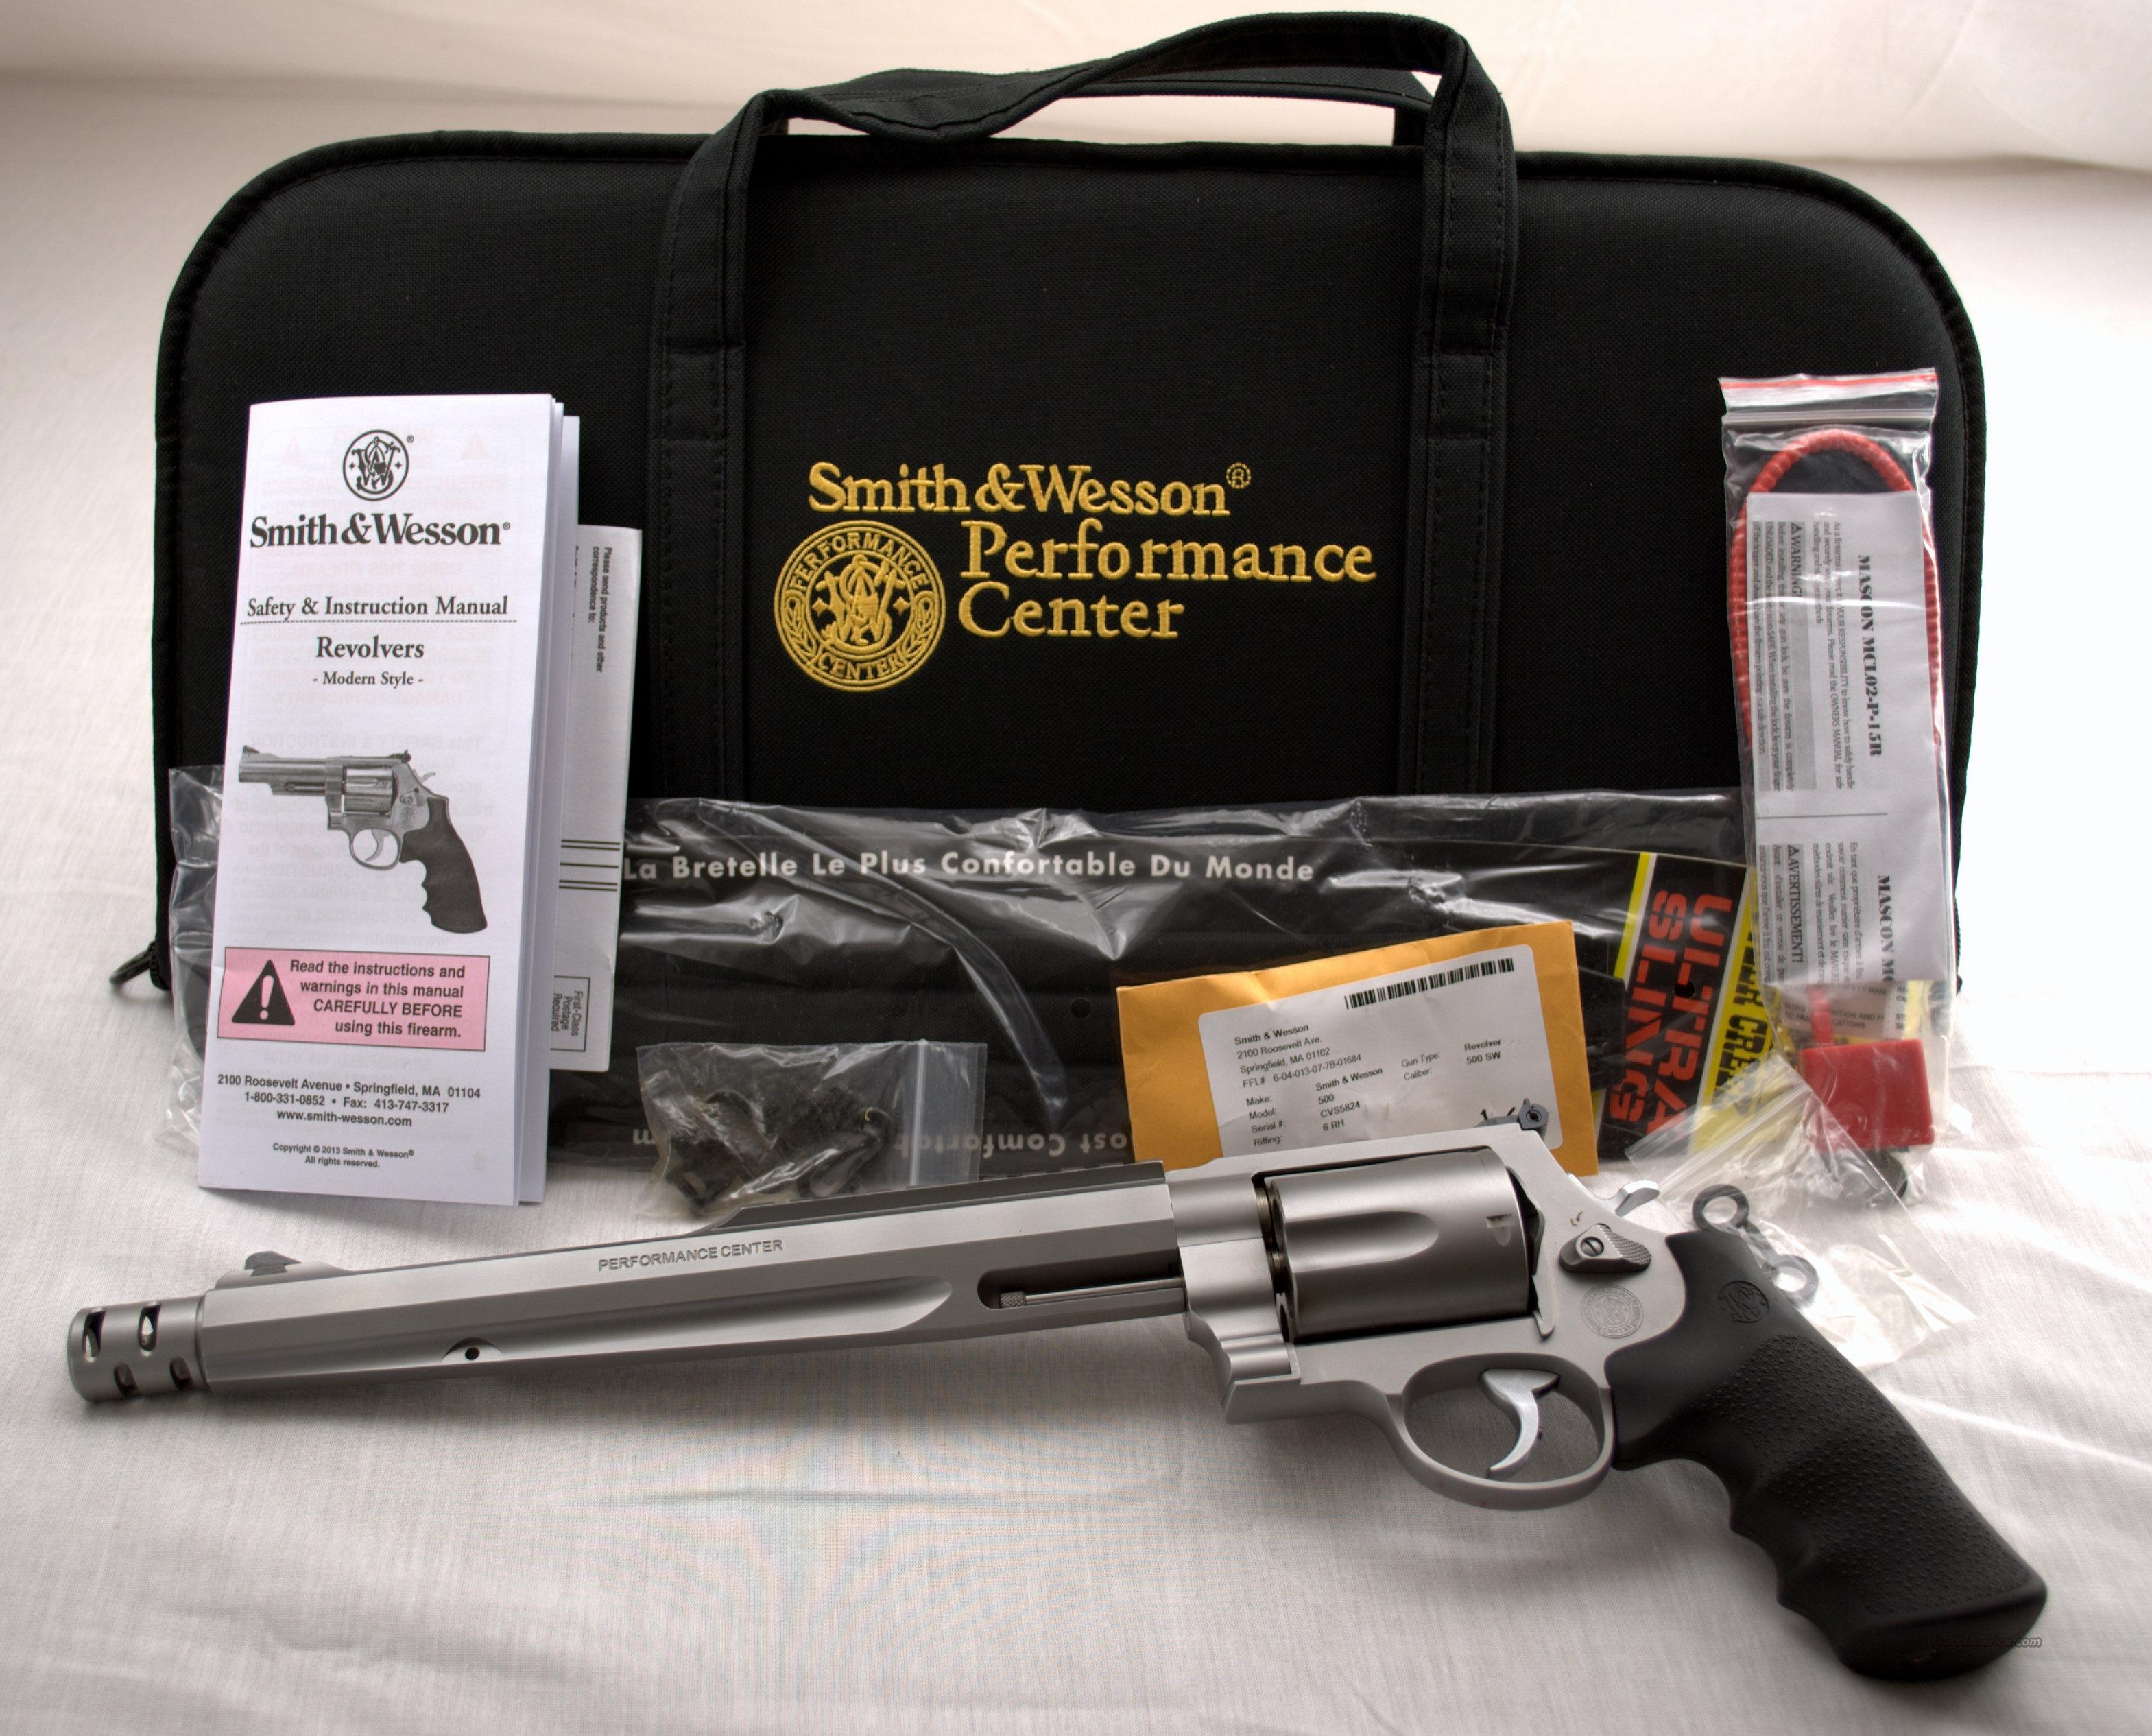 SMITH & WESSON MODEL 500 PERFORMANCE CENTER STAINLESS 500 S&W CALIBER  Guns > Pistols > Smith & Wesson Revolvers > Performance Center